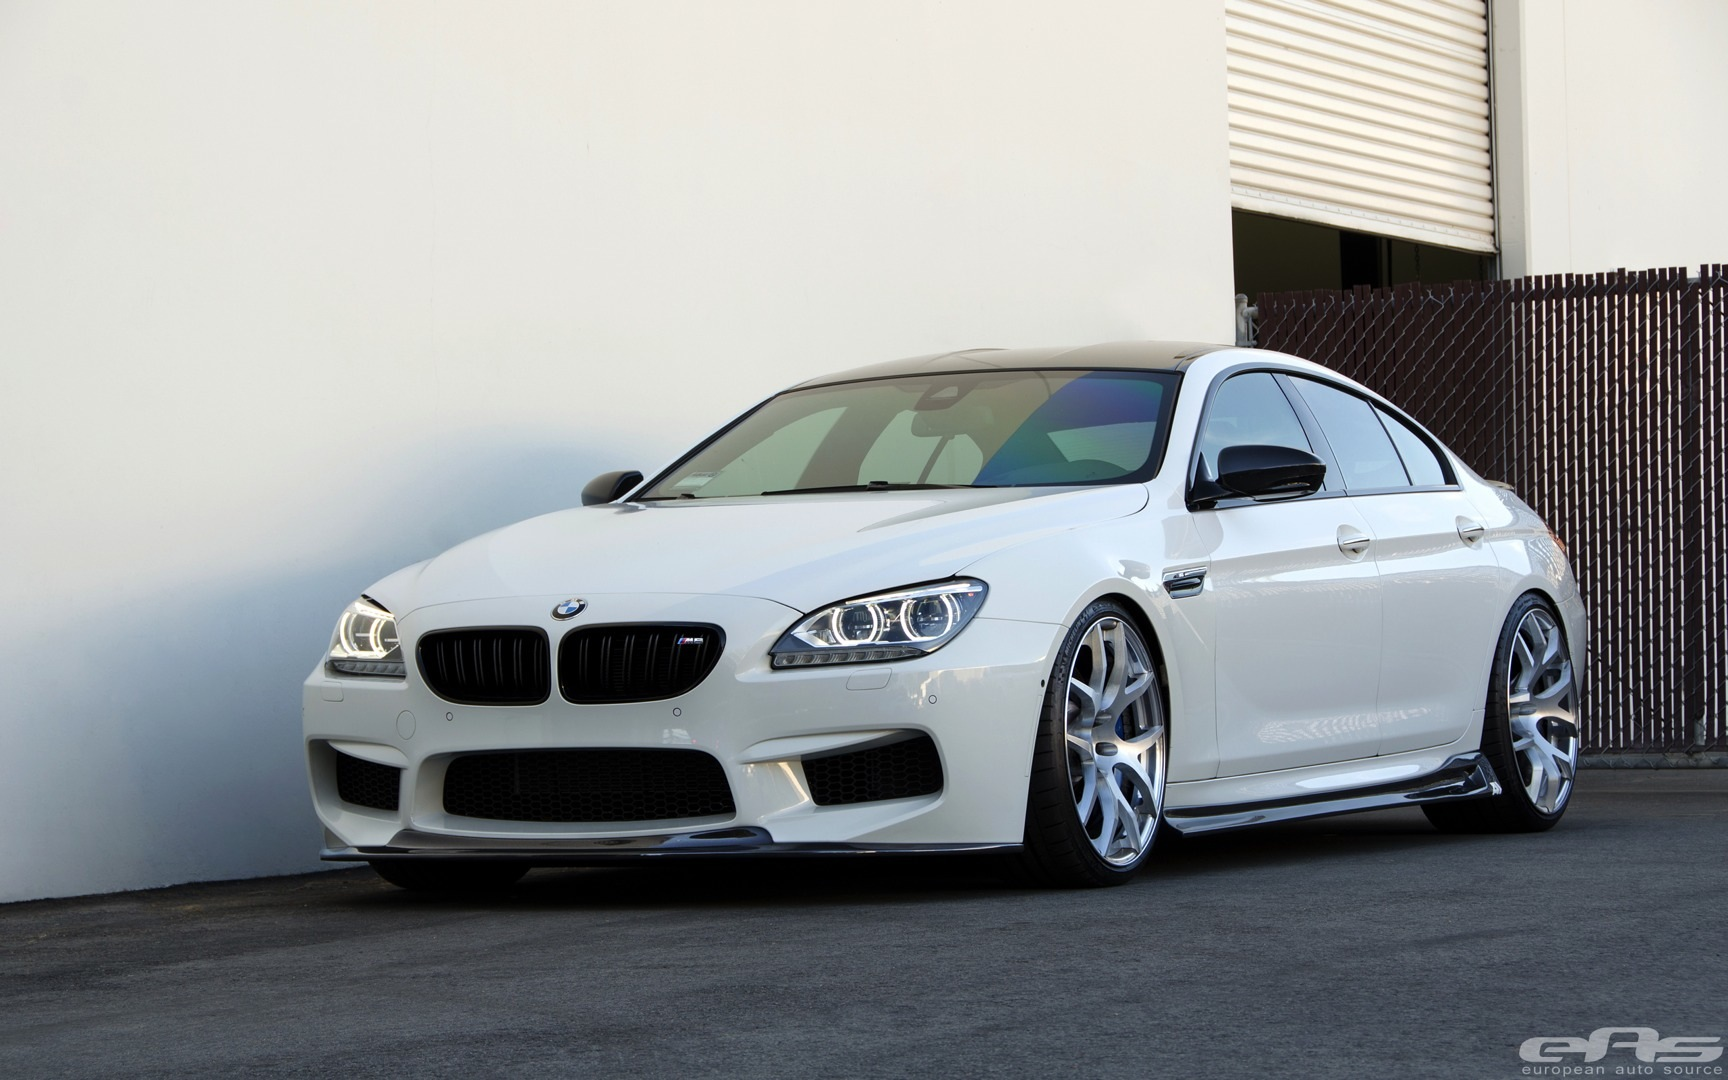 2015 Bmw M6 Gran Coupe #5